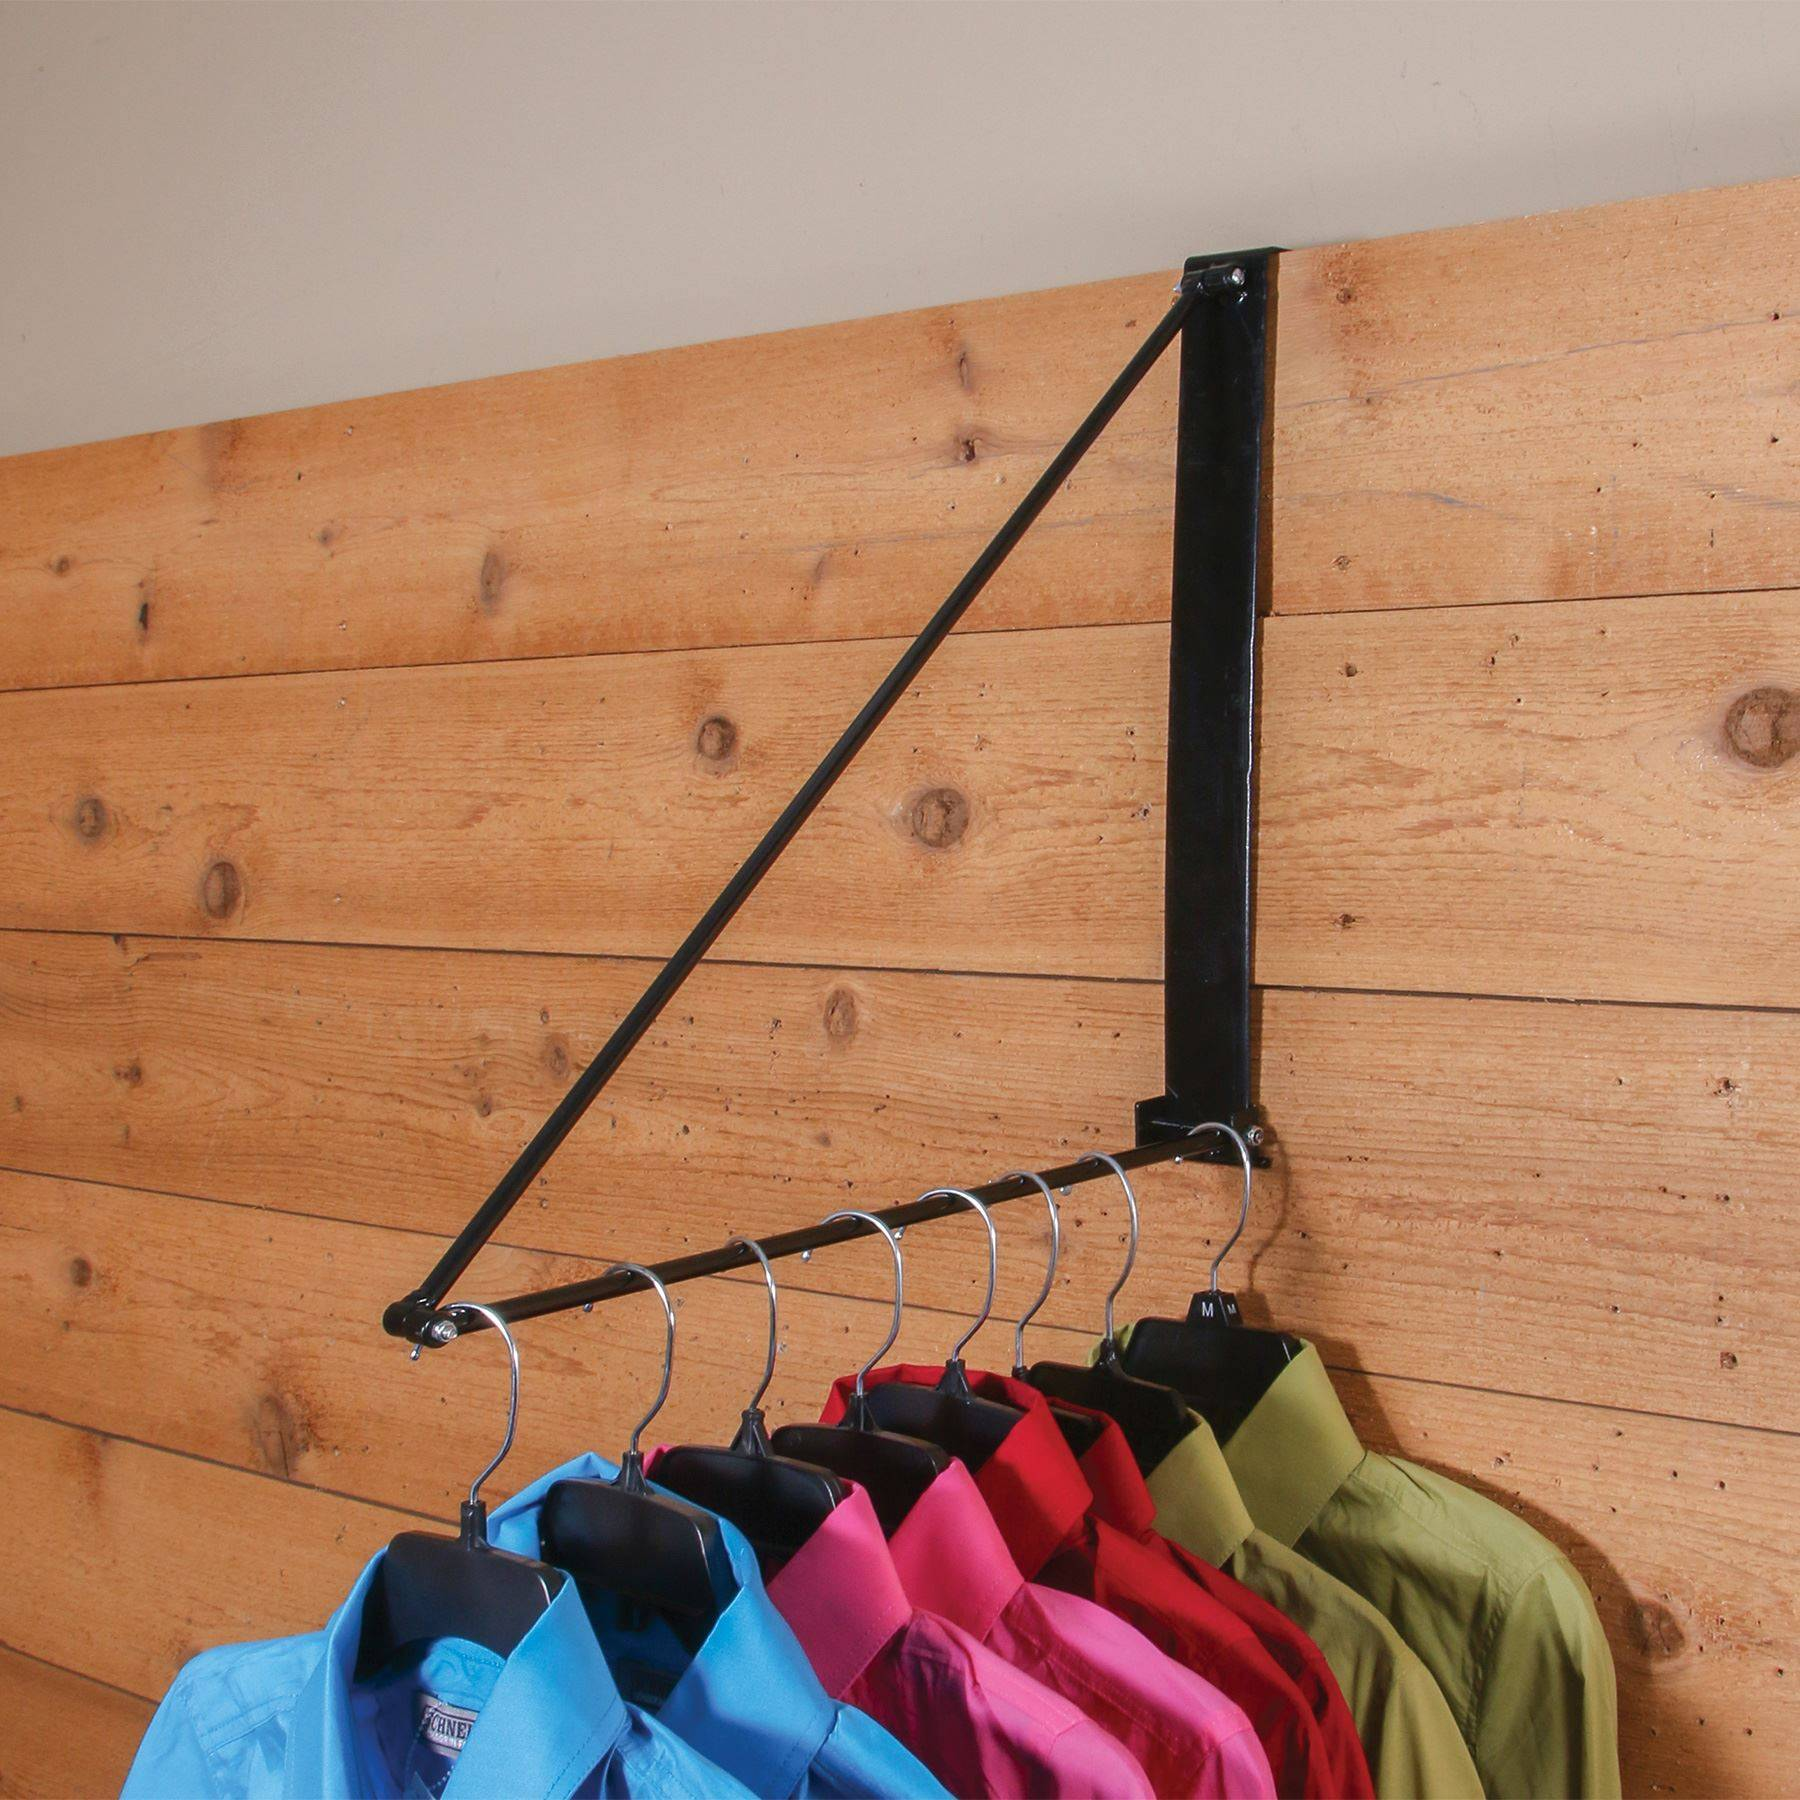 Easy up collapsible clothing hanger